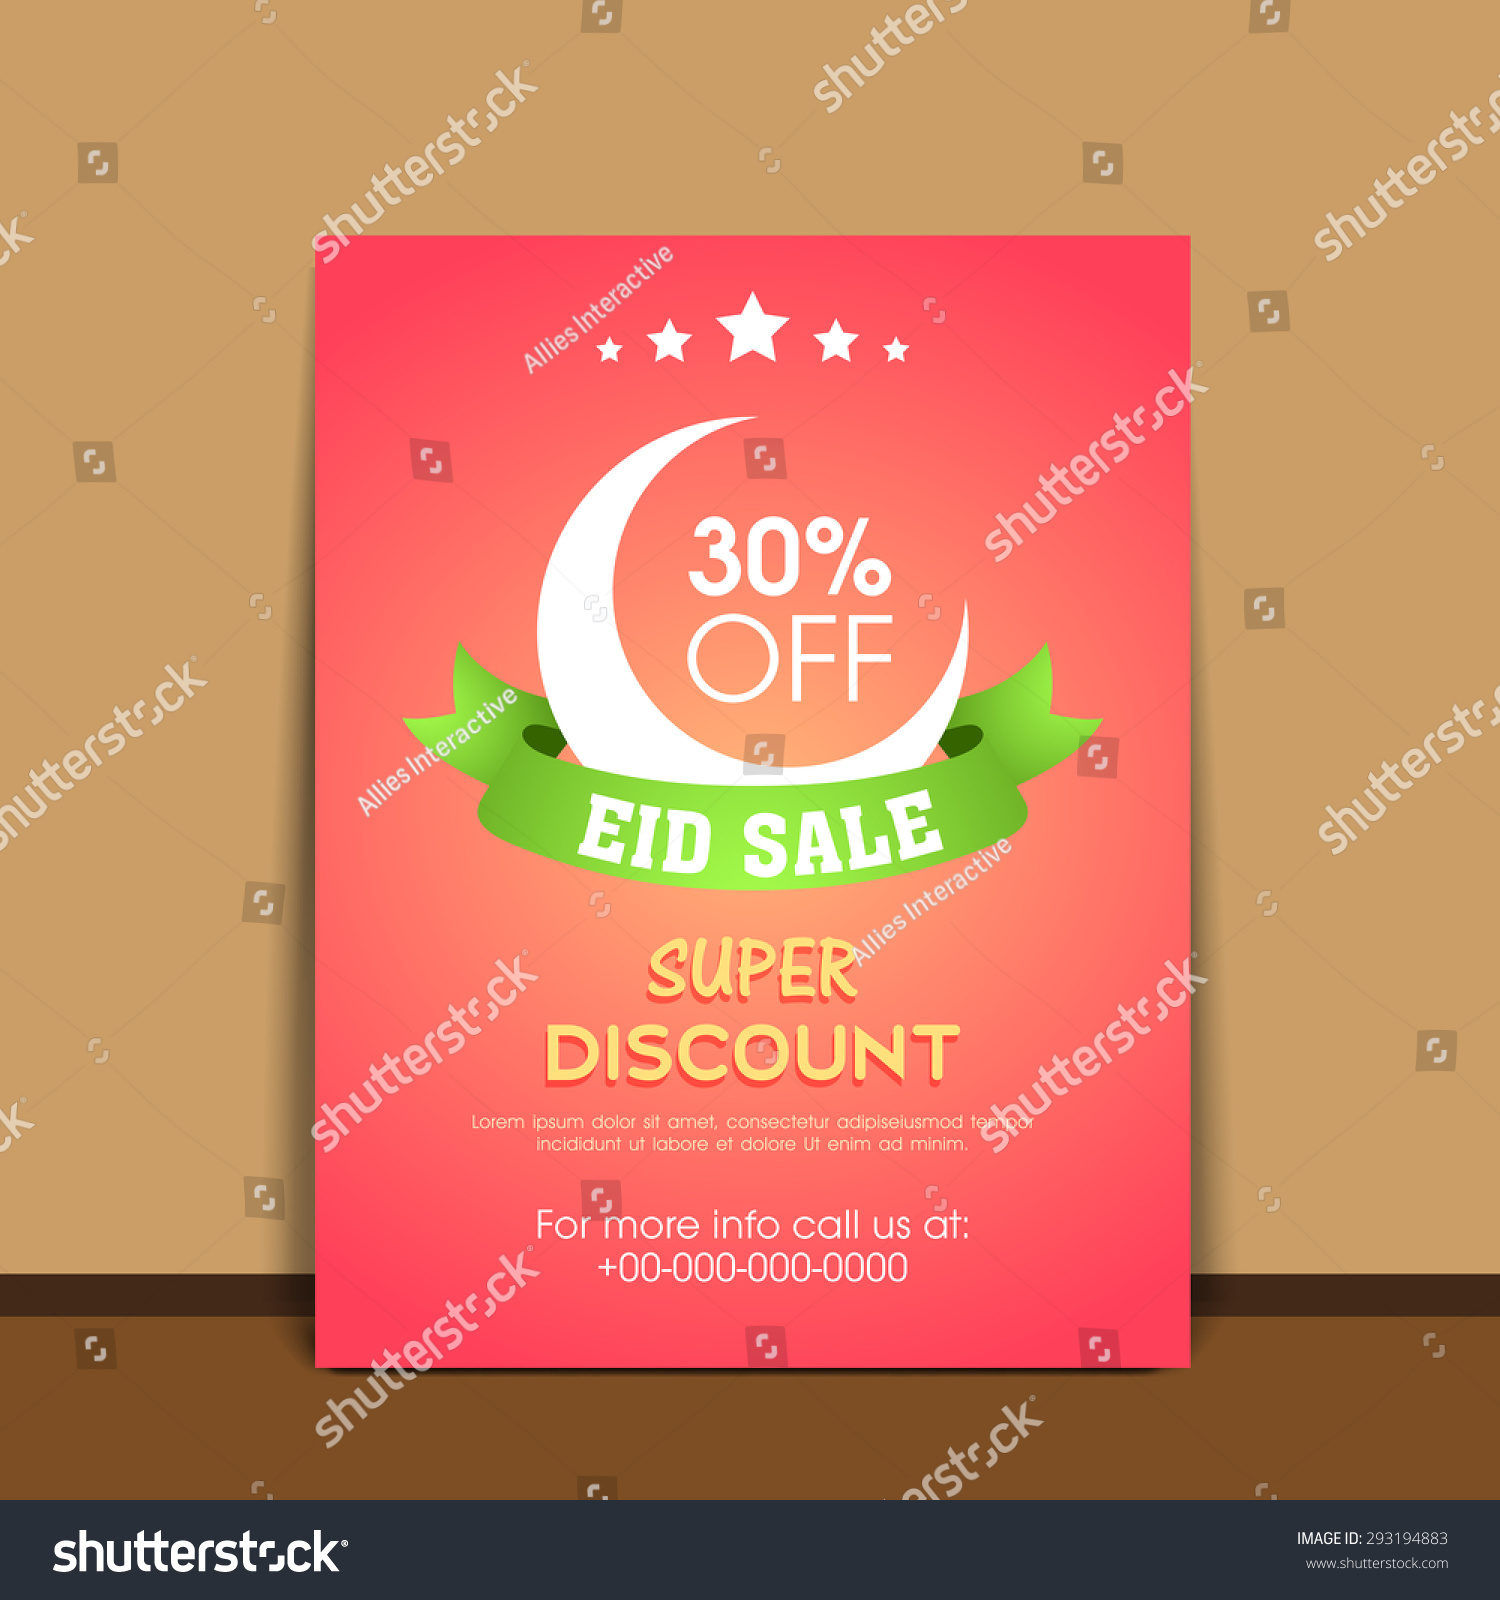 sale advertisement template